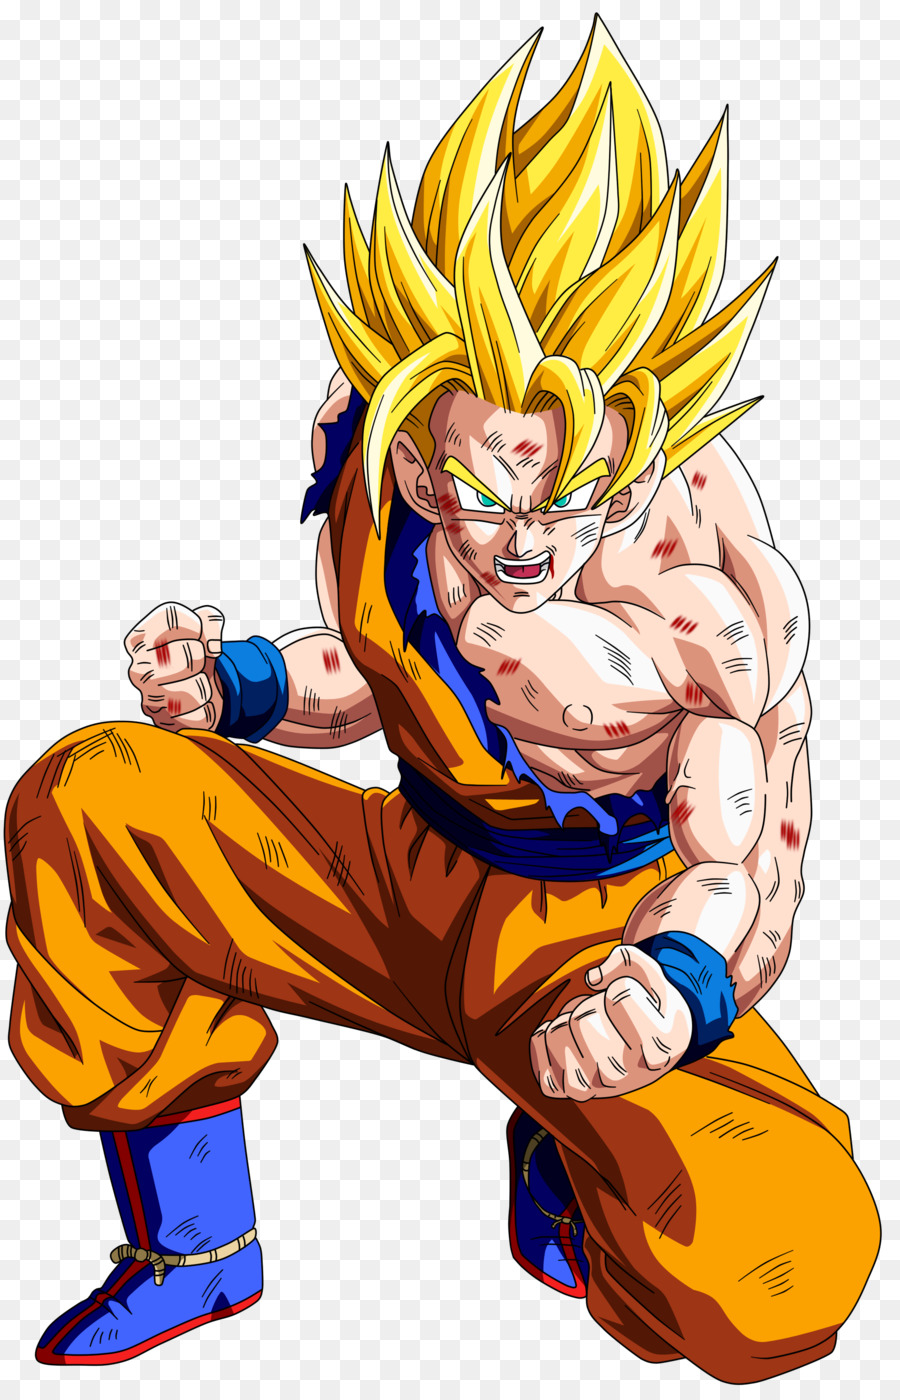 Dragon ball gt pictures by markus kau on feelgrafix.